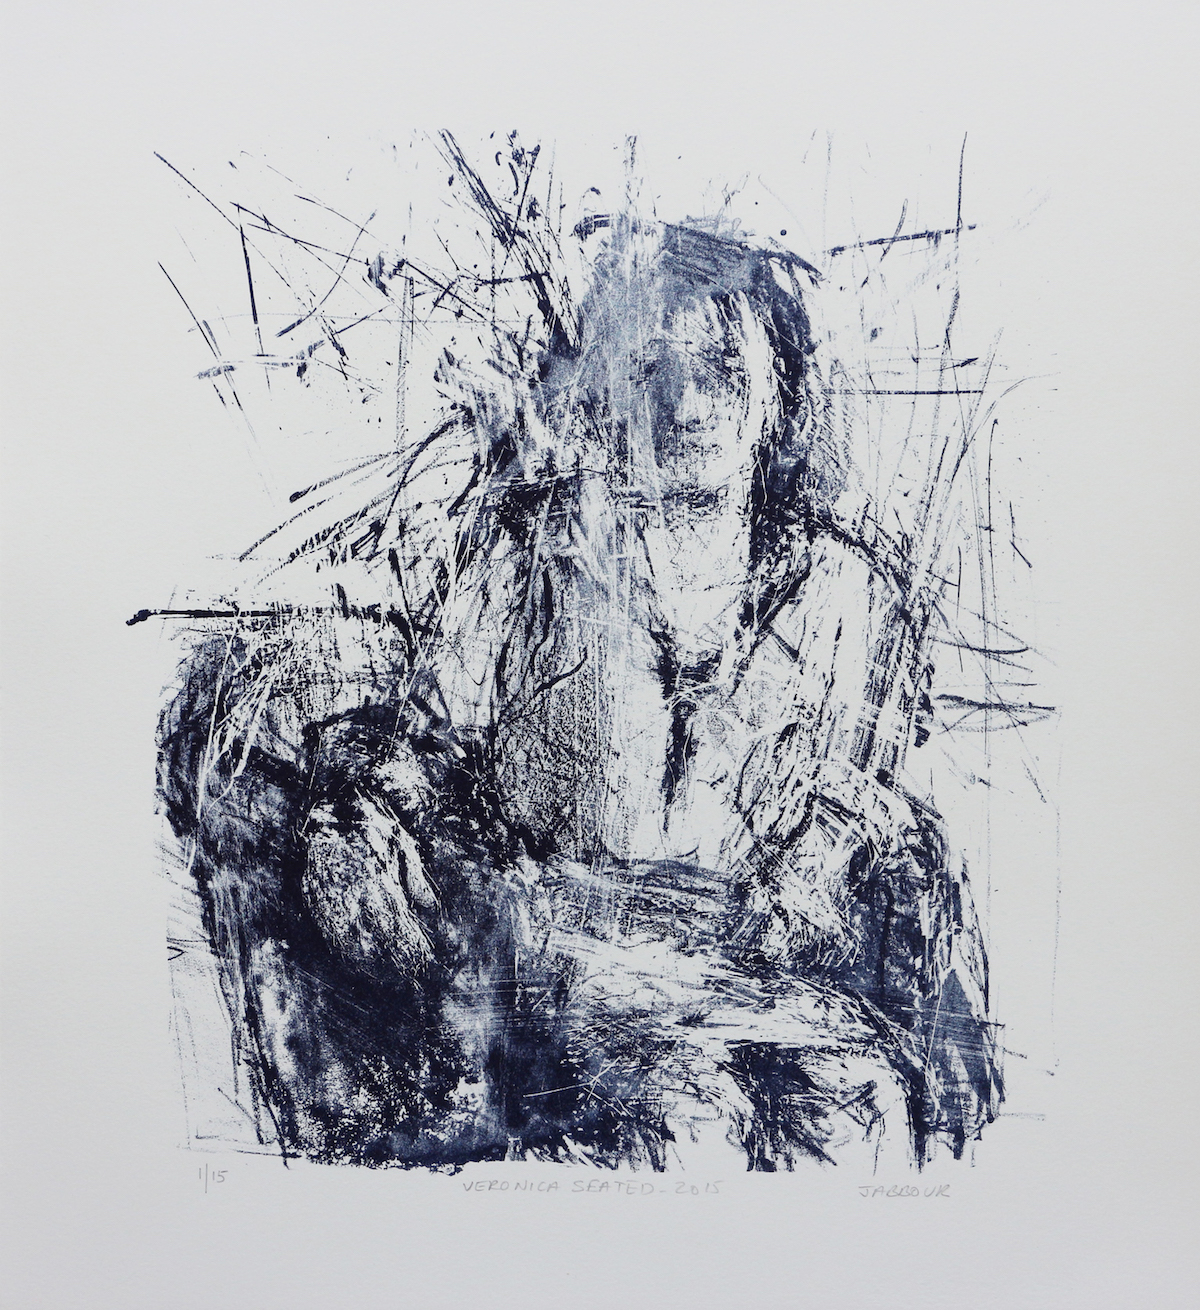 Litho - Veronica Seated